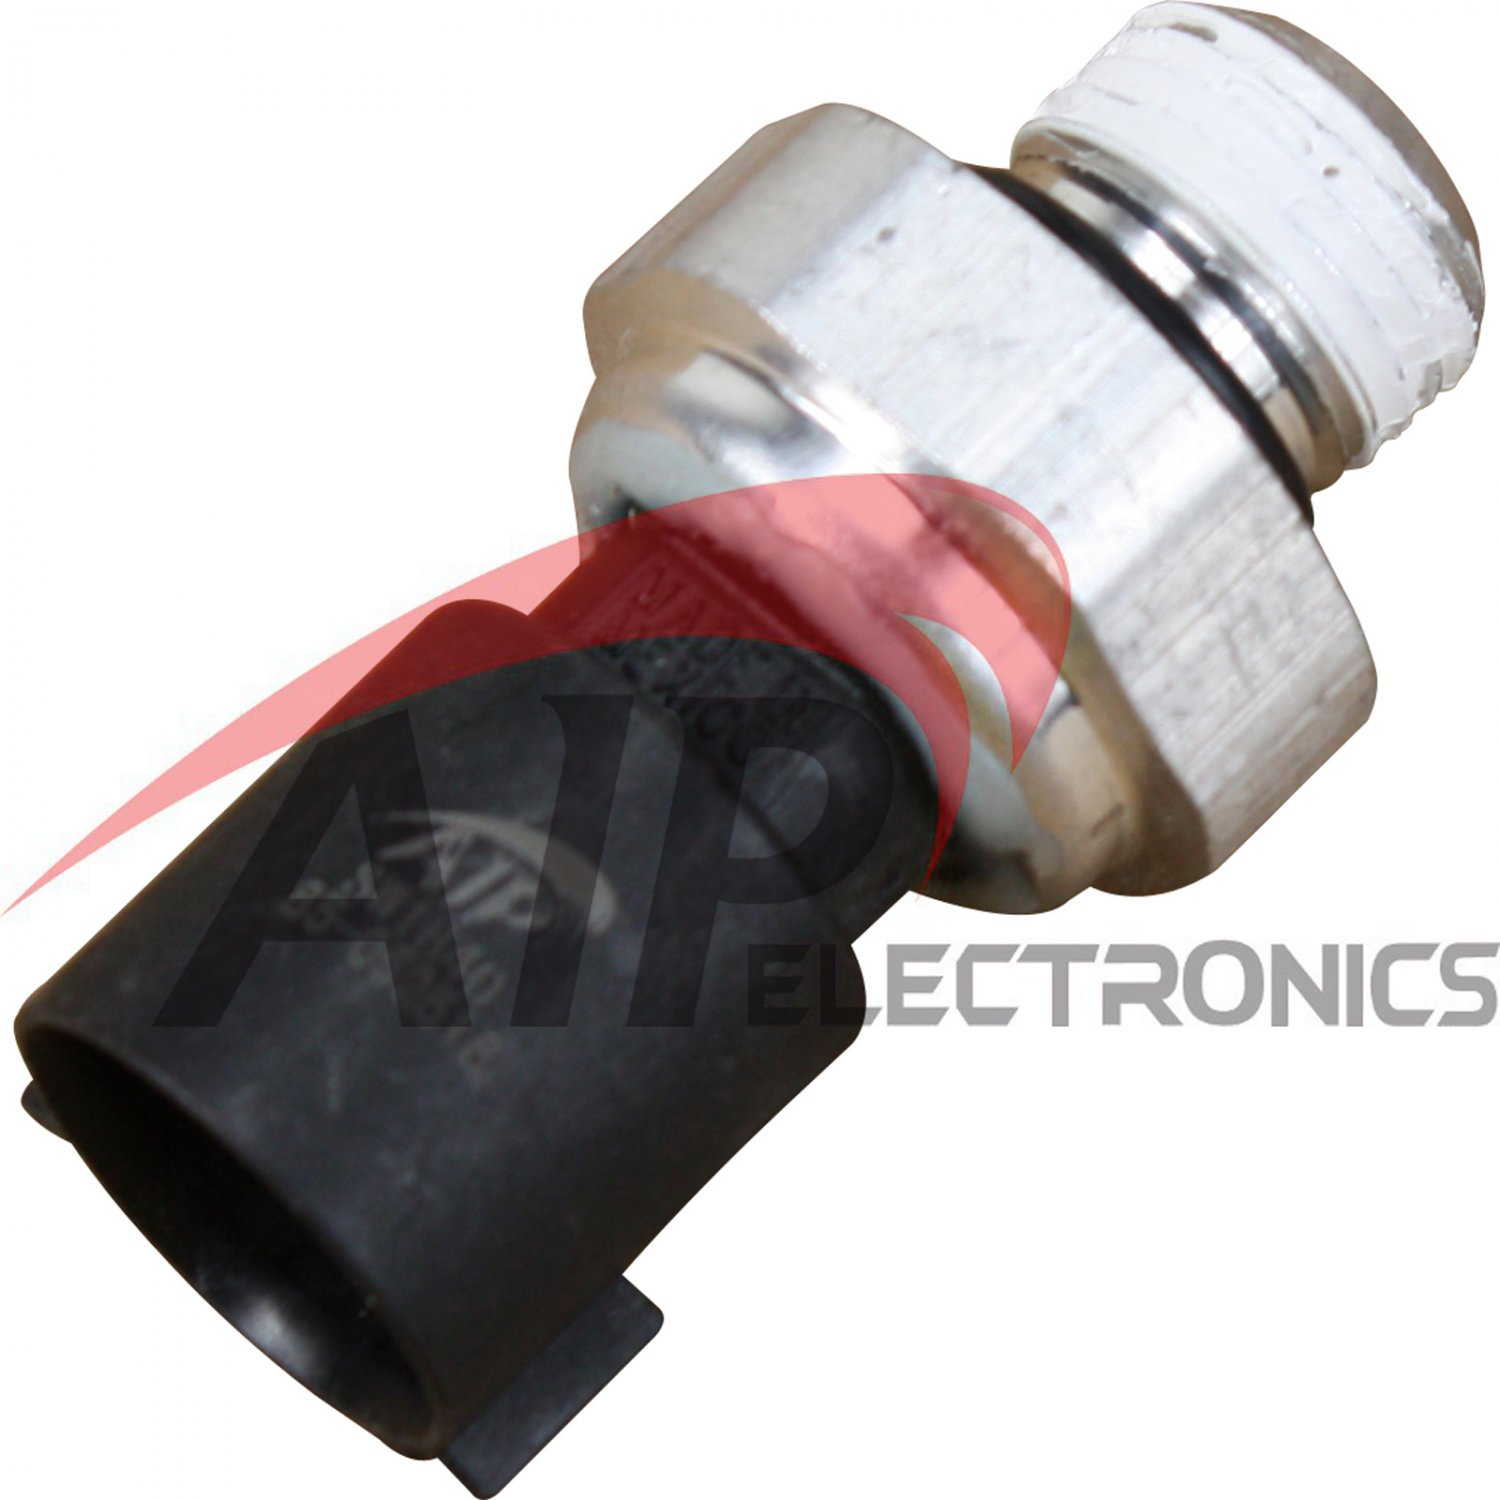 Brand New Engine Oil Pressure Switch  for 2009-2013 Chevrolet & Cadillac V8 12596951 Oem Fit SW1840